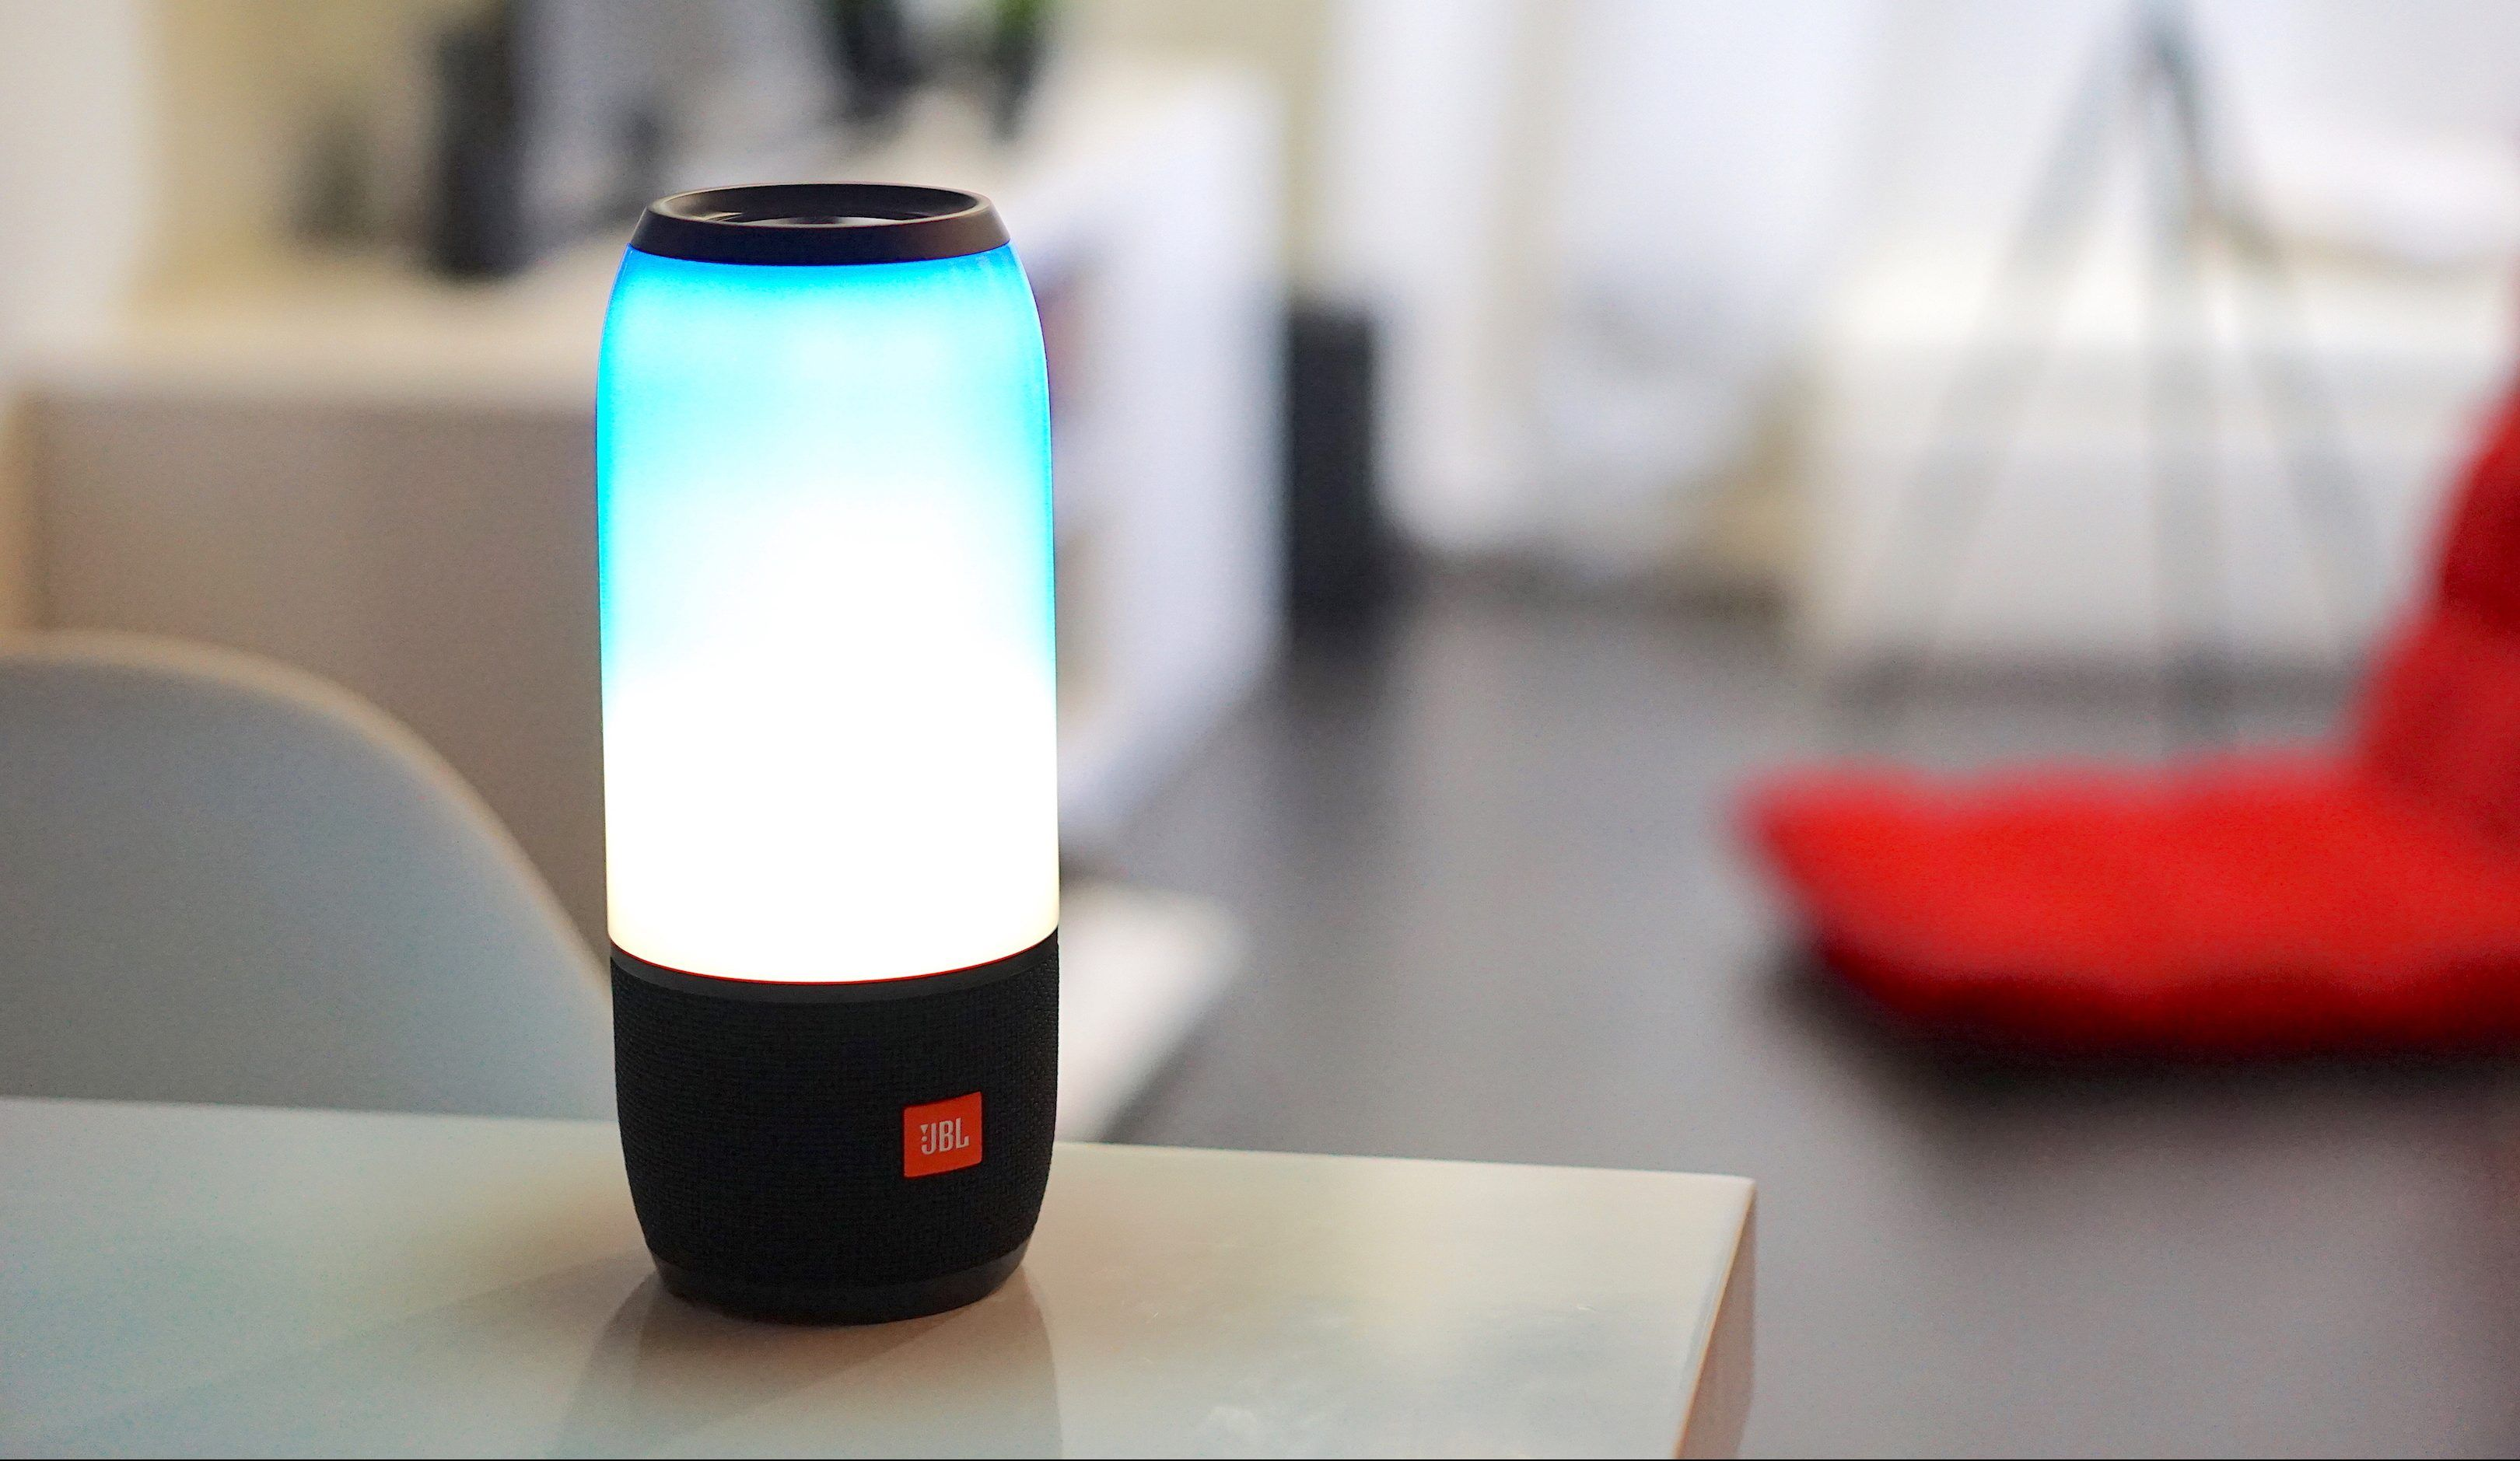 Lava Lamp Bluetooth Speaker Classy Review  Jbl Pulse 3 Speaker The Lava Lamp That Sings  Http Inspiration Design